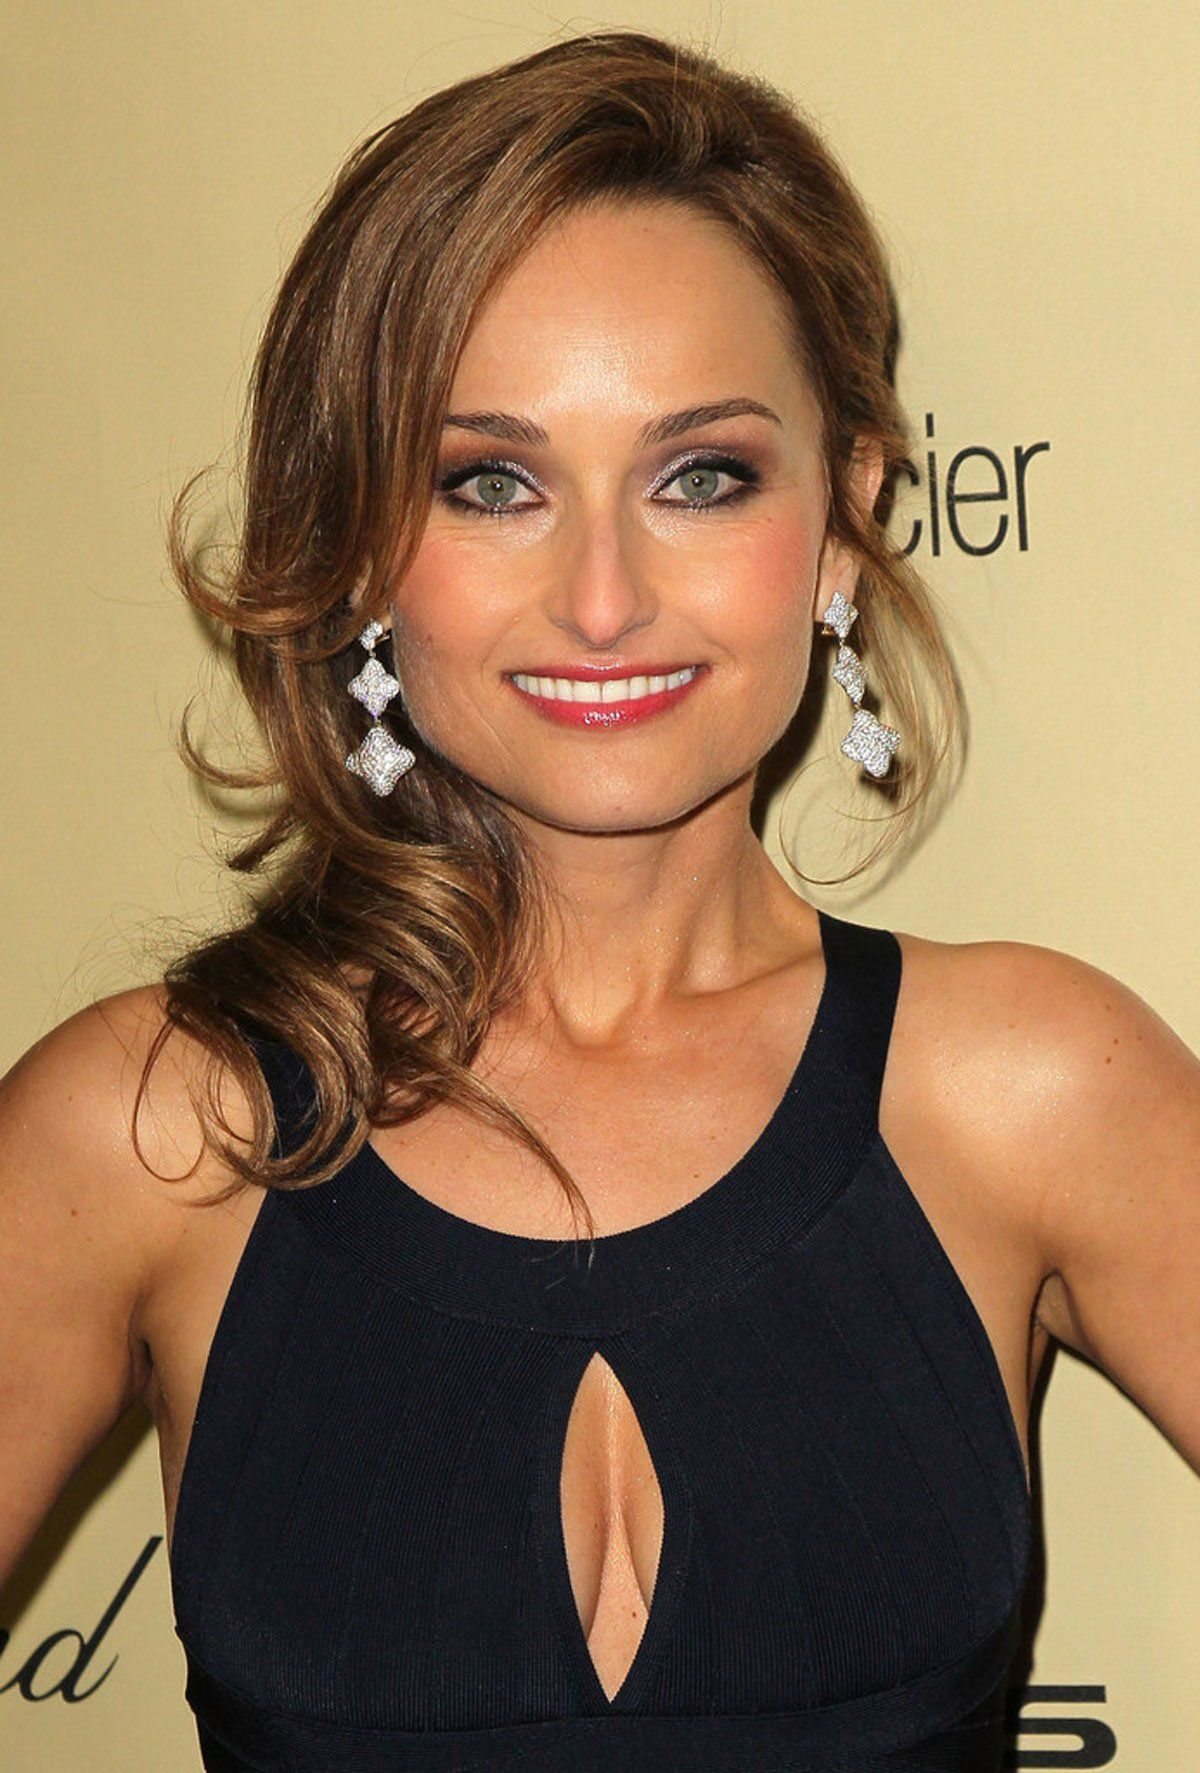 Obviously de eat giada pussy laurentiis congratulate